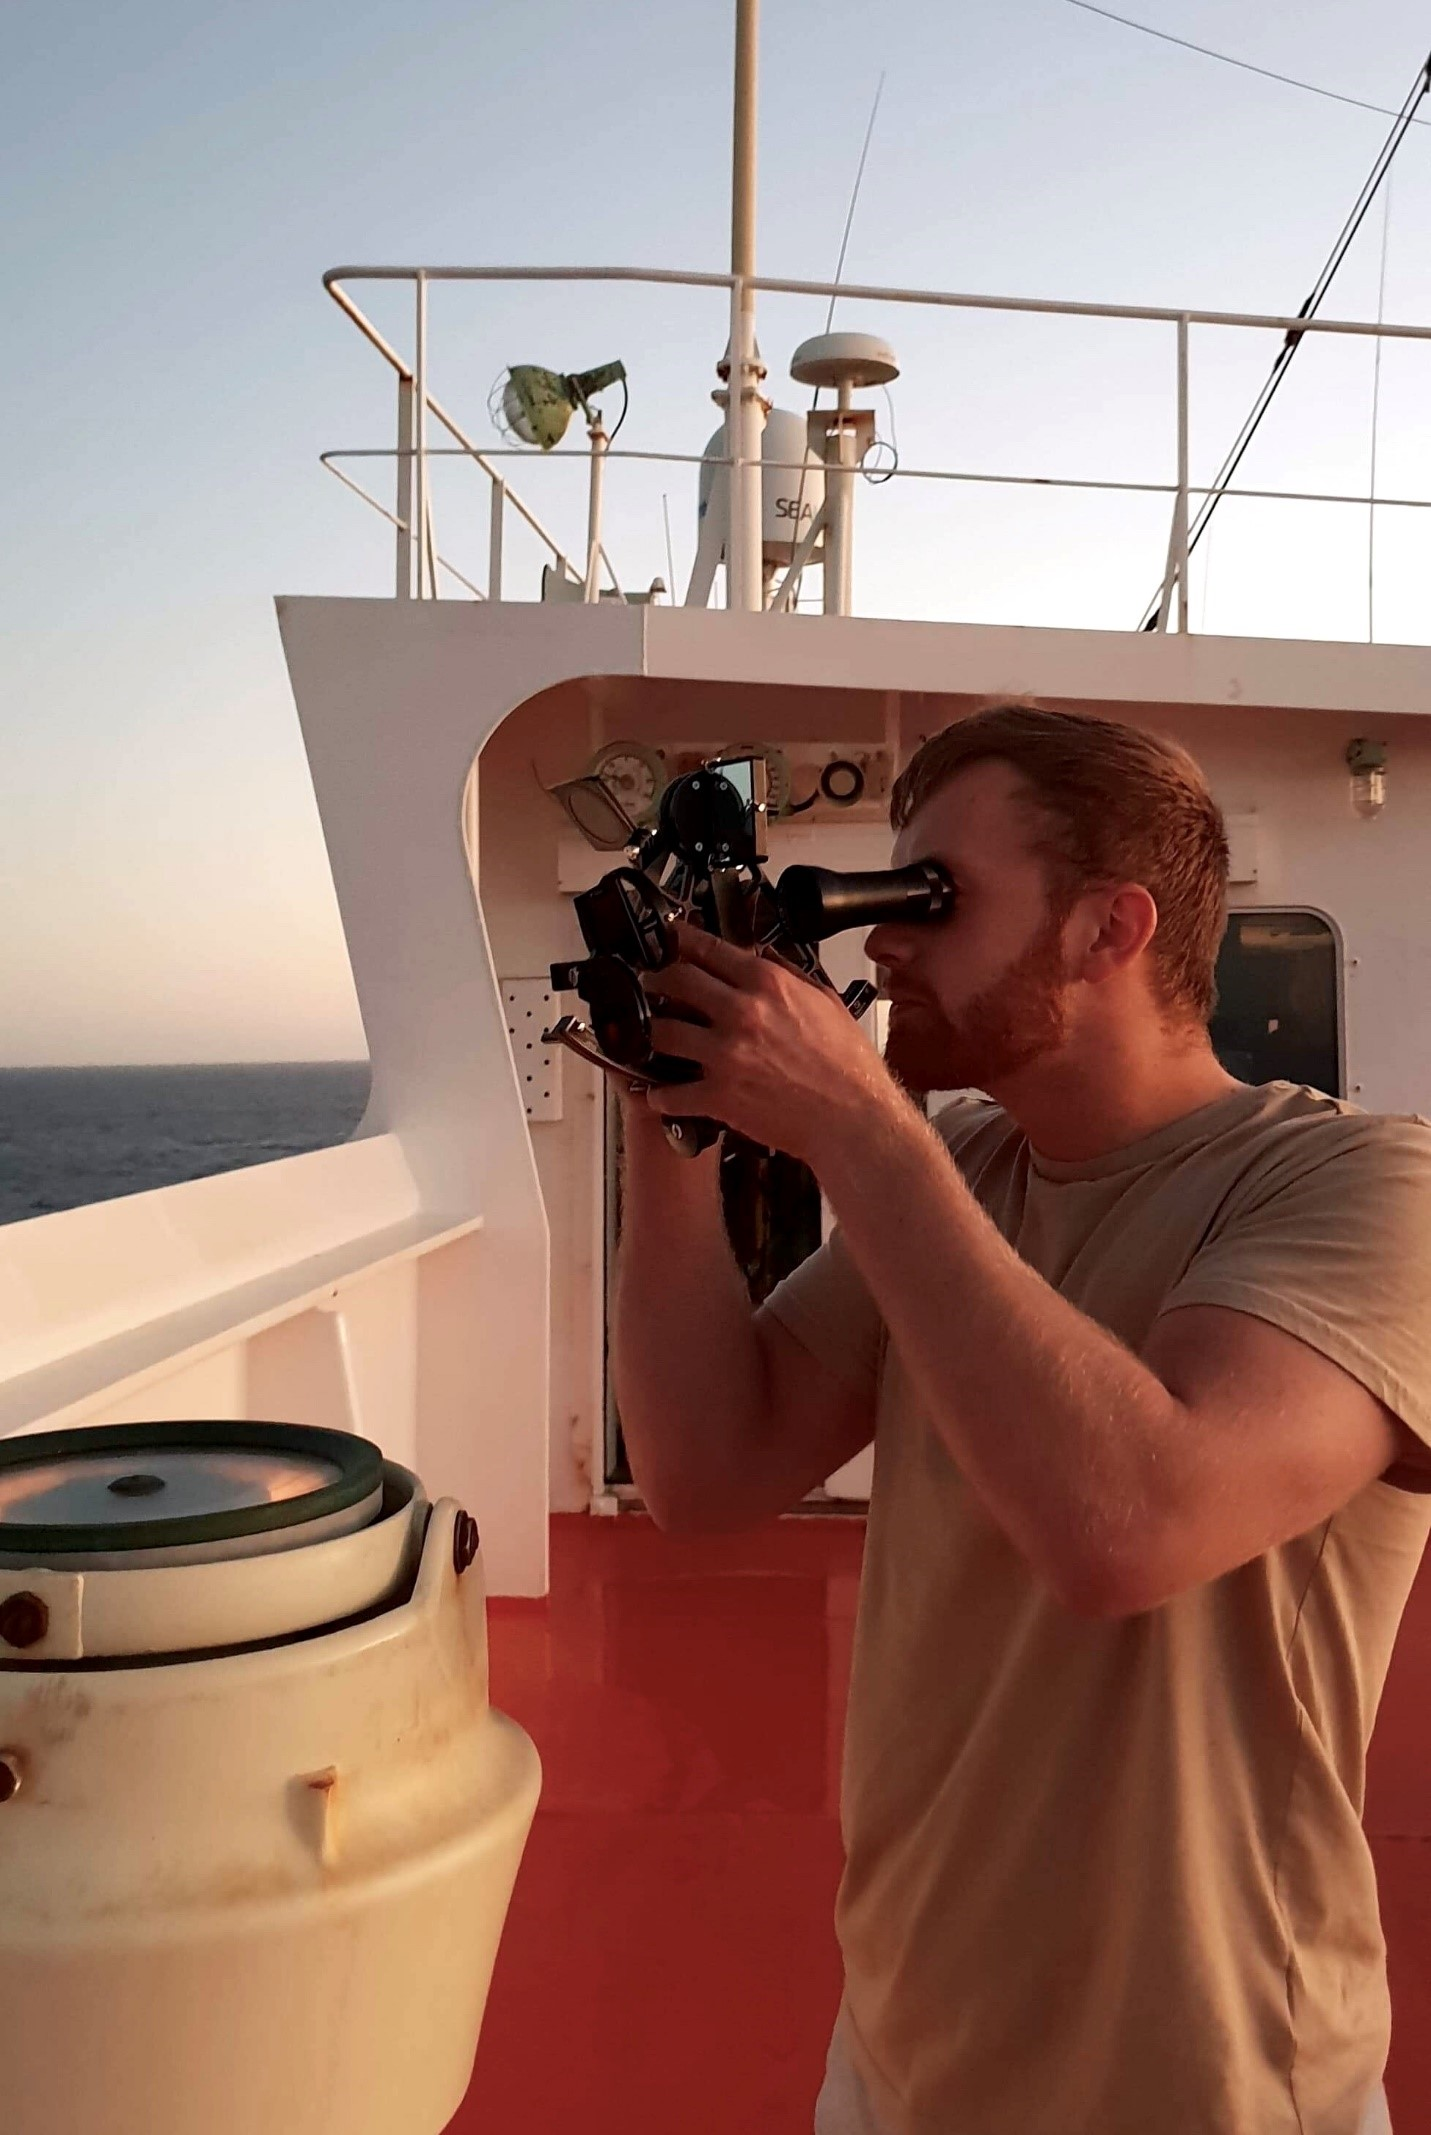 Image: Henrik Reiten on board the MV Banastar, operating a sextant to find the position of the vessel